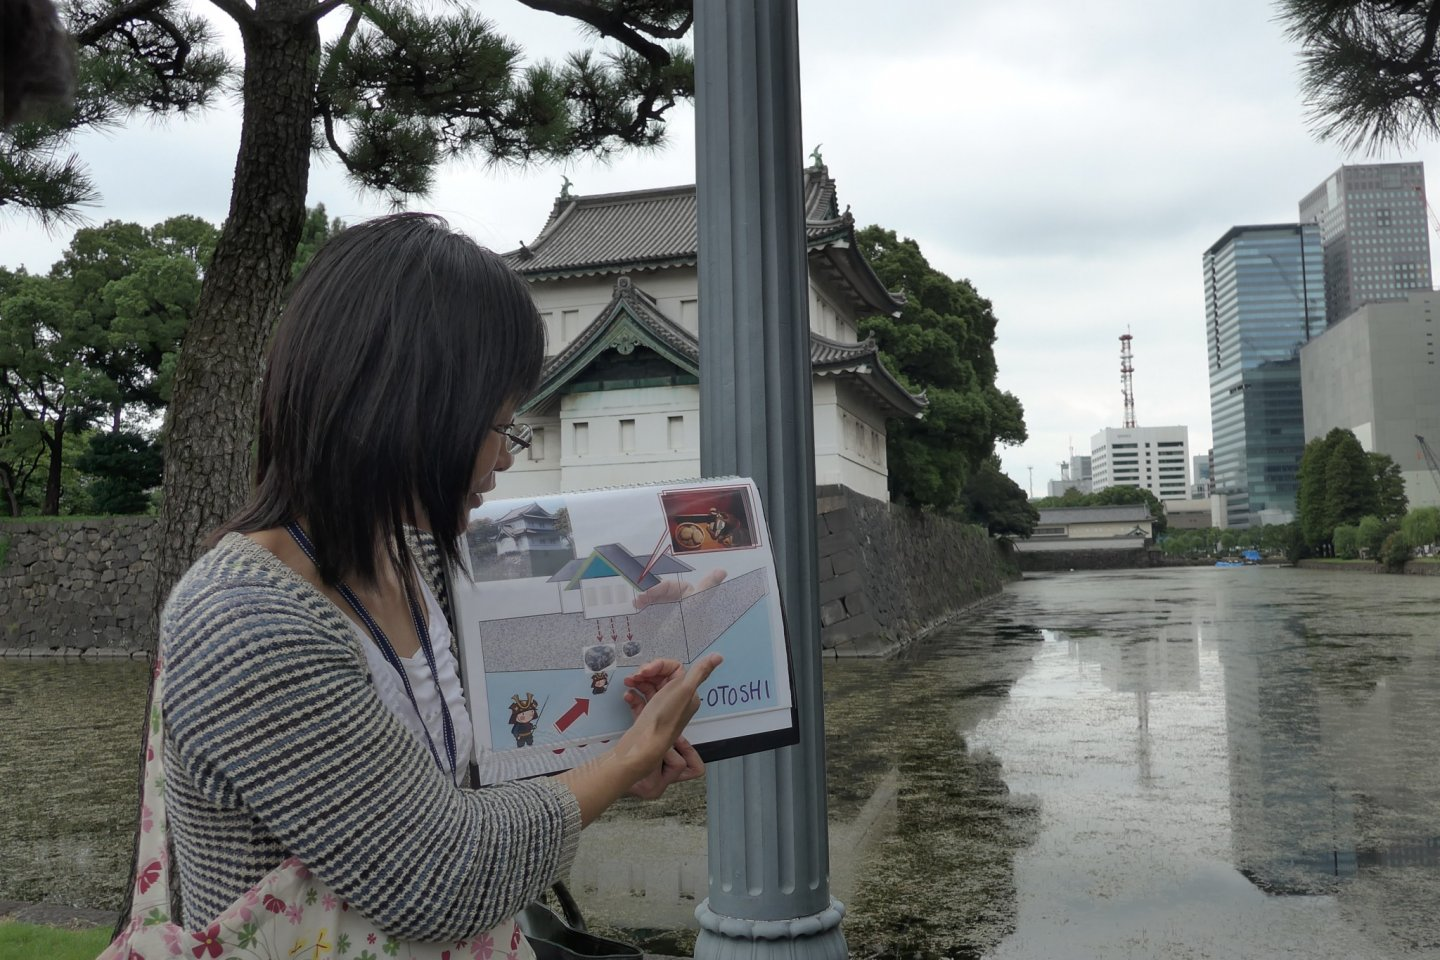 The guides are prepared with illustrations on some features of the site.